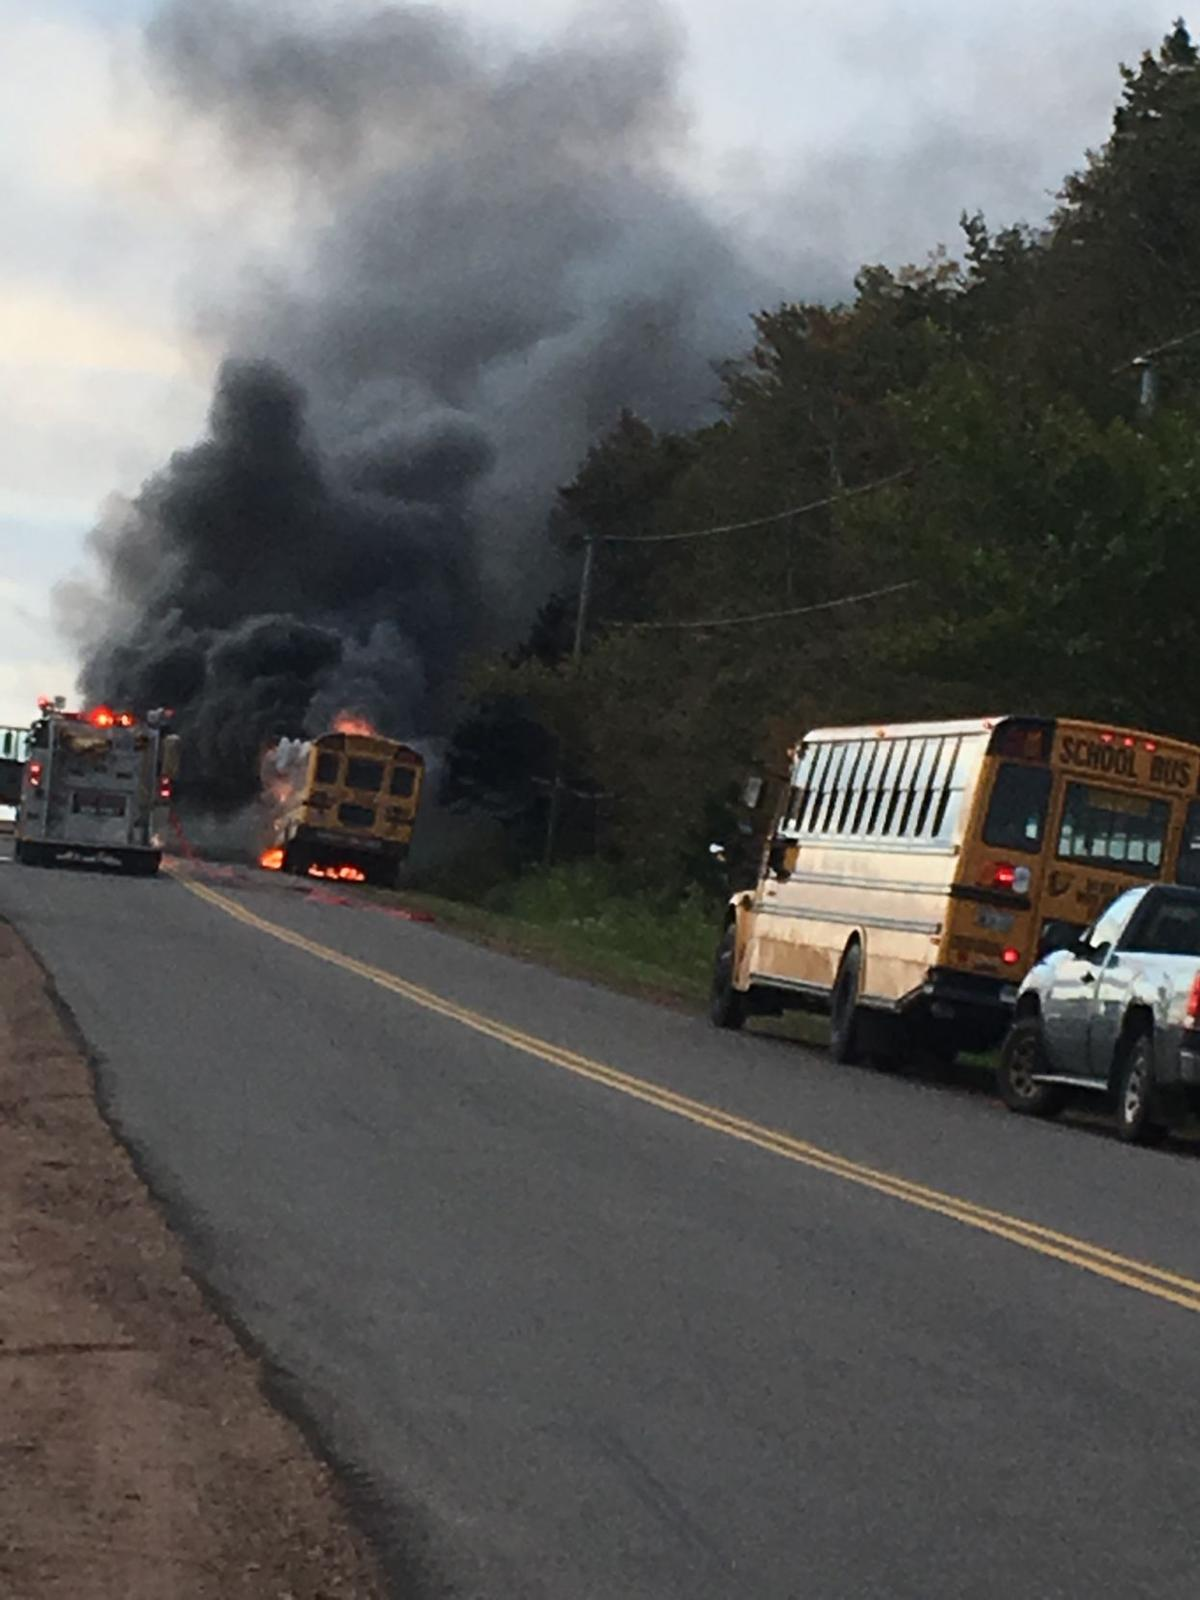 School bus destroyed in early morning fire - driver safe , no students on board